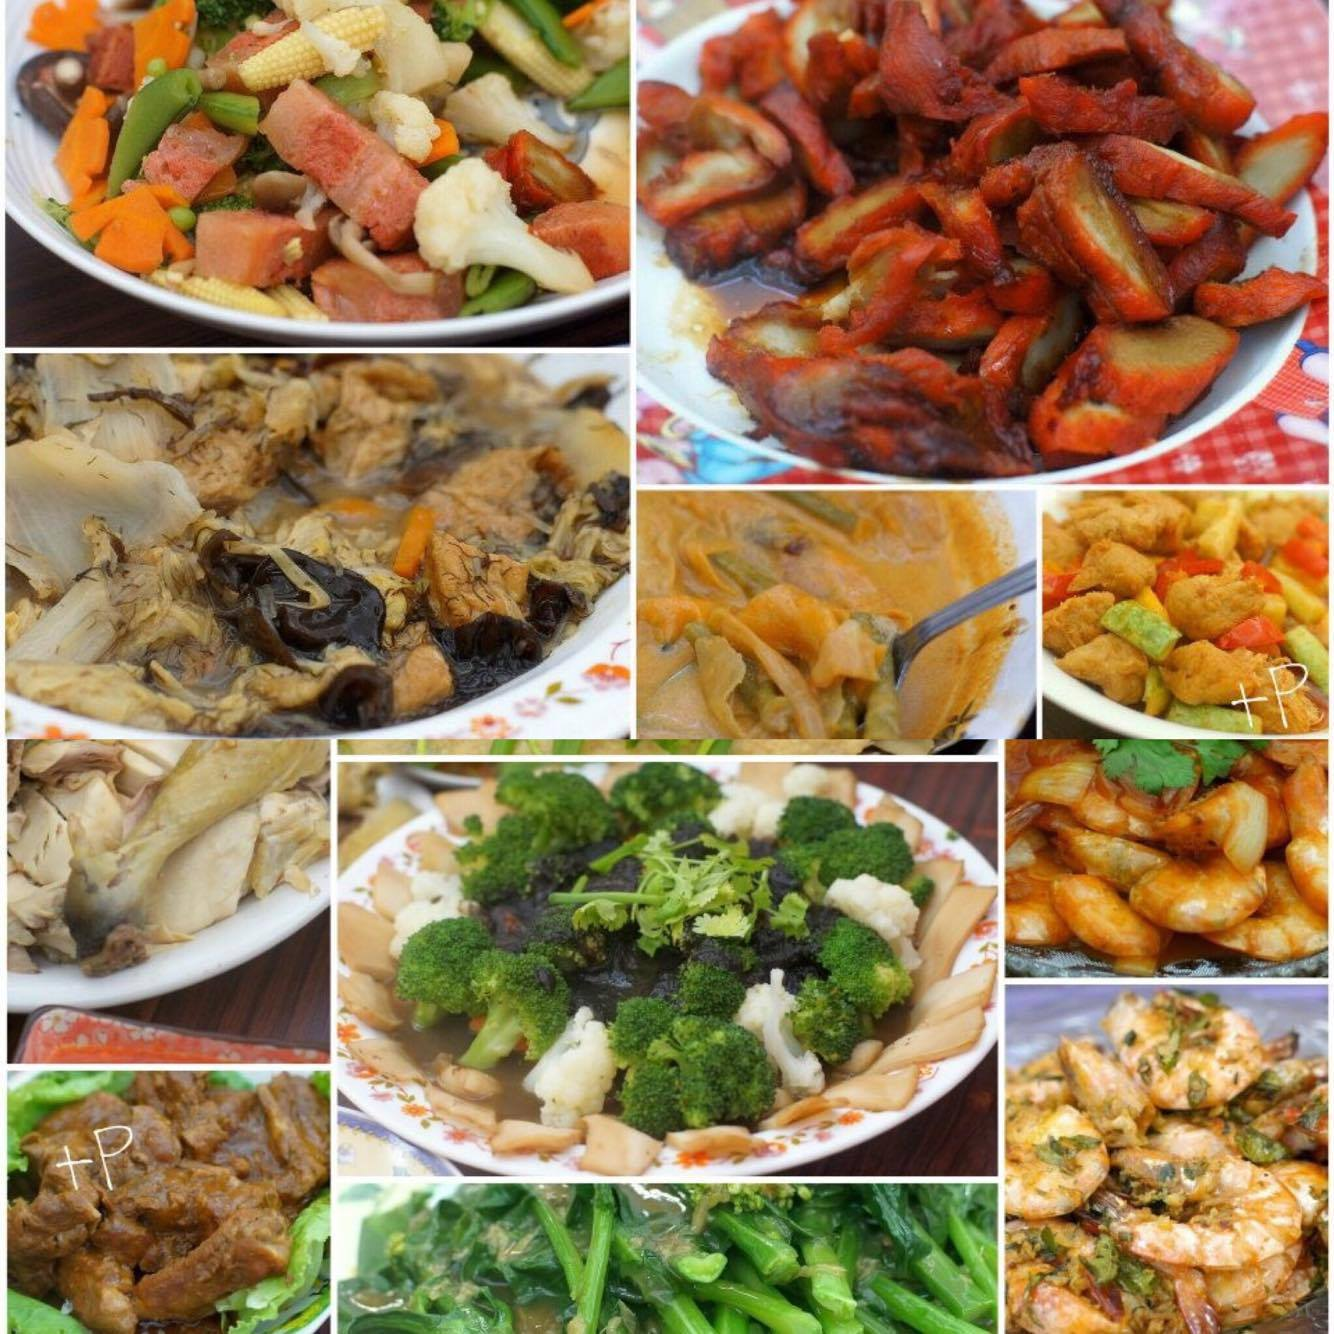 My overseas chinese new year experience student life a few traditional meals are observed every cny it starts with the night before cny where we have the reunion dinner where mostly meat and seafood are forumfinder Image collections